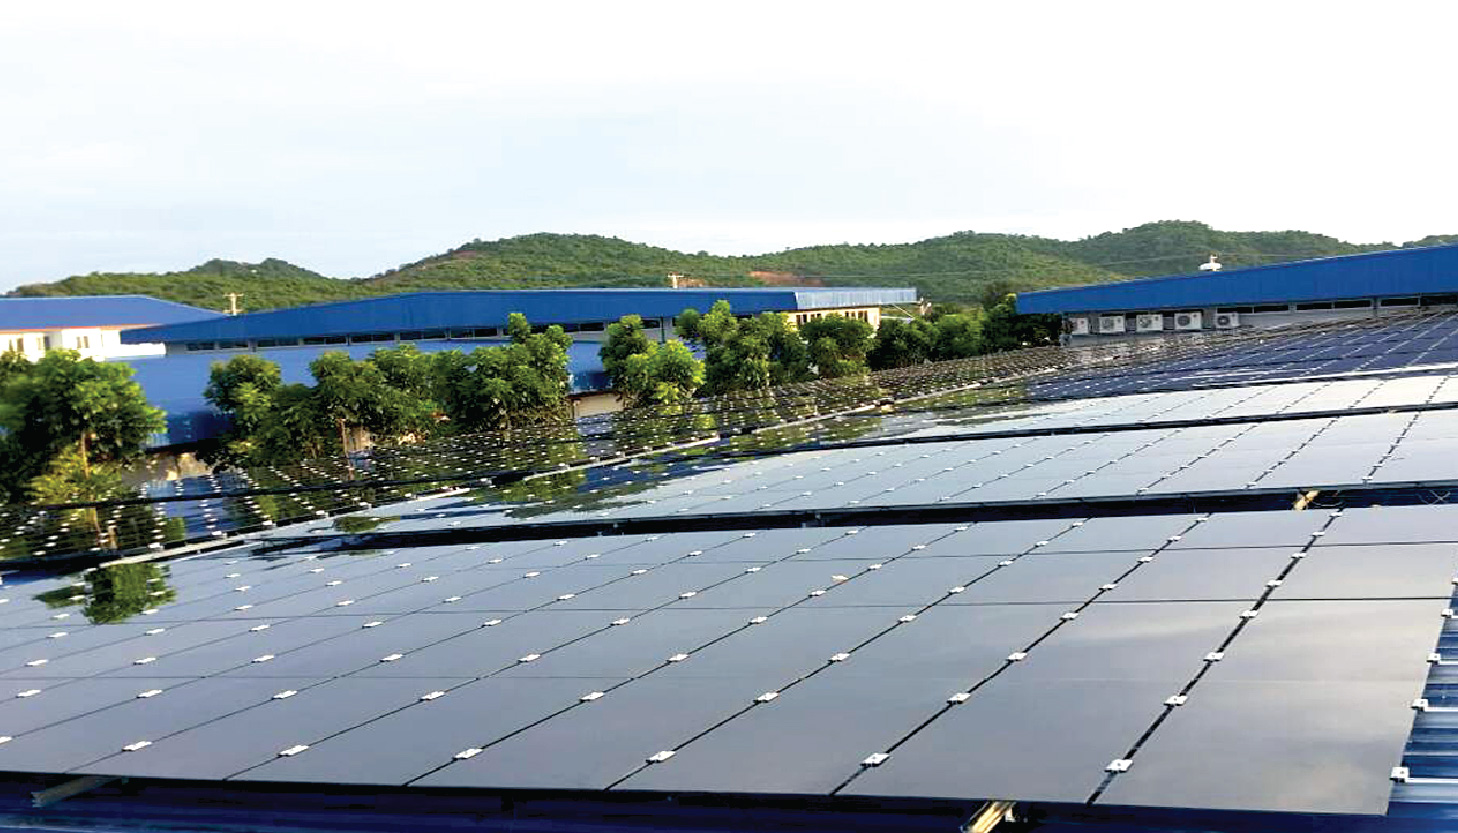 http://irradiance.co.th/image/SRISOPOL, CAMBODIA (200 kWp)-01.jpg